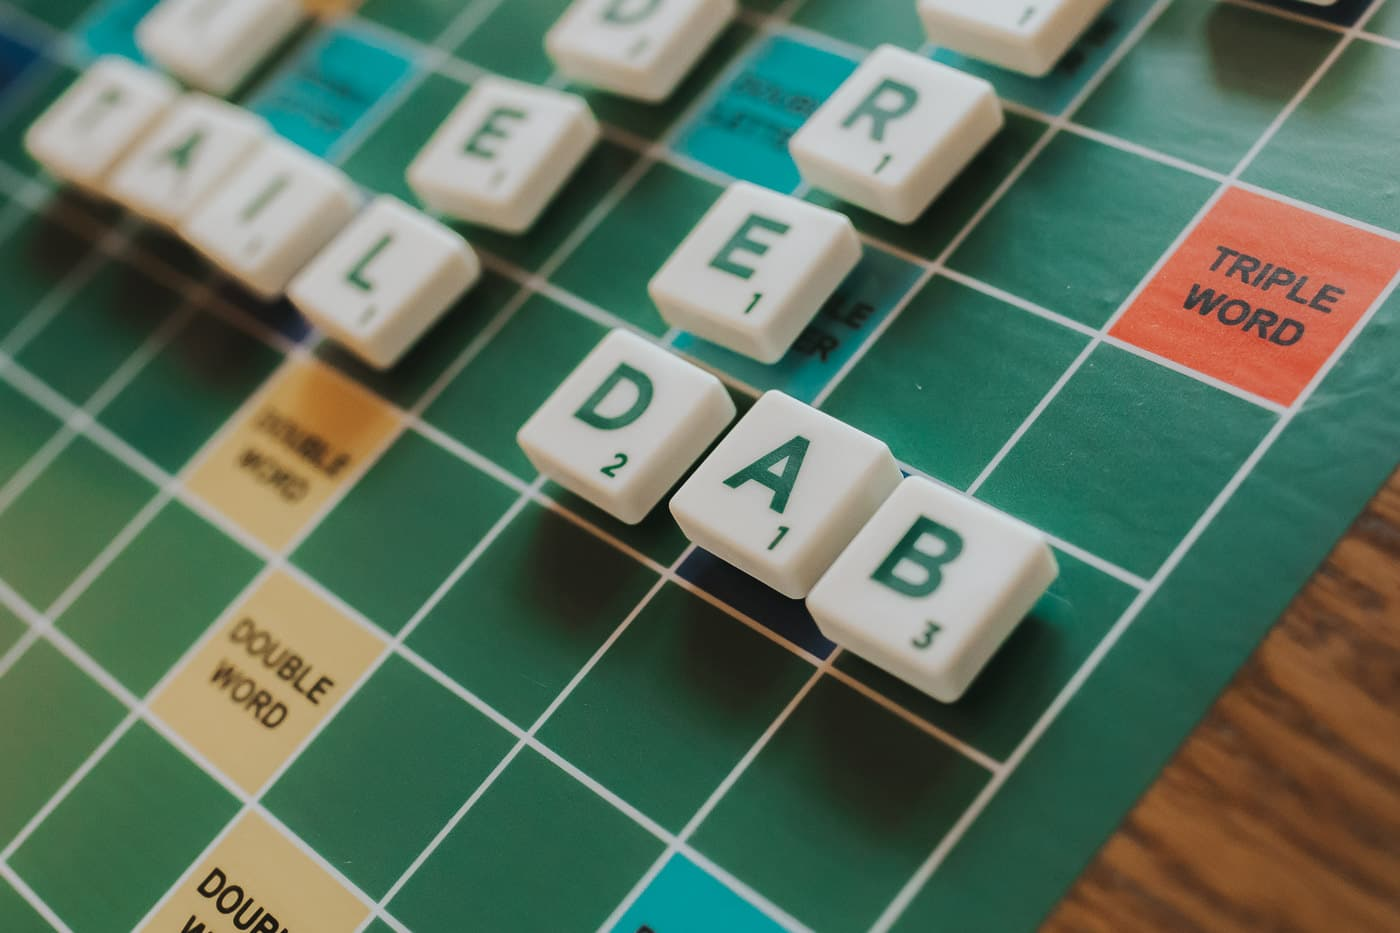 close up of a scrabble board with tiles on, the word in focus is Dab